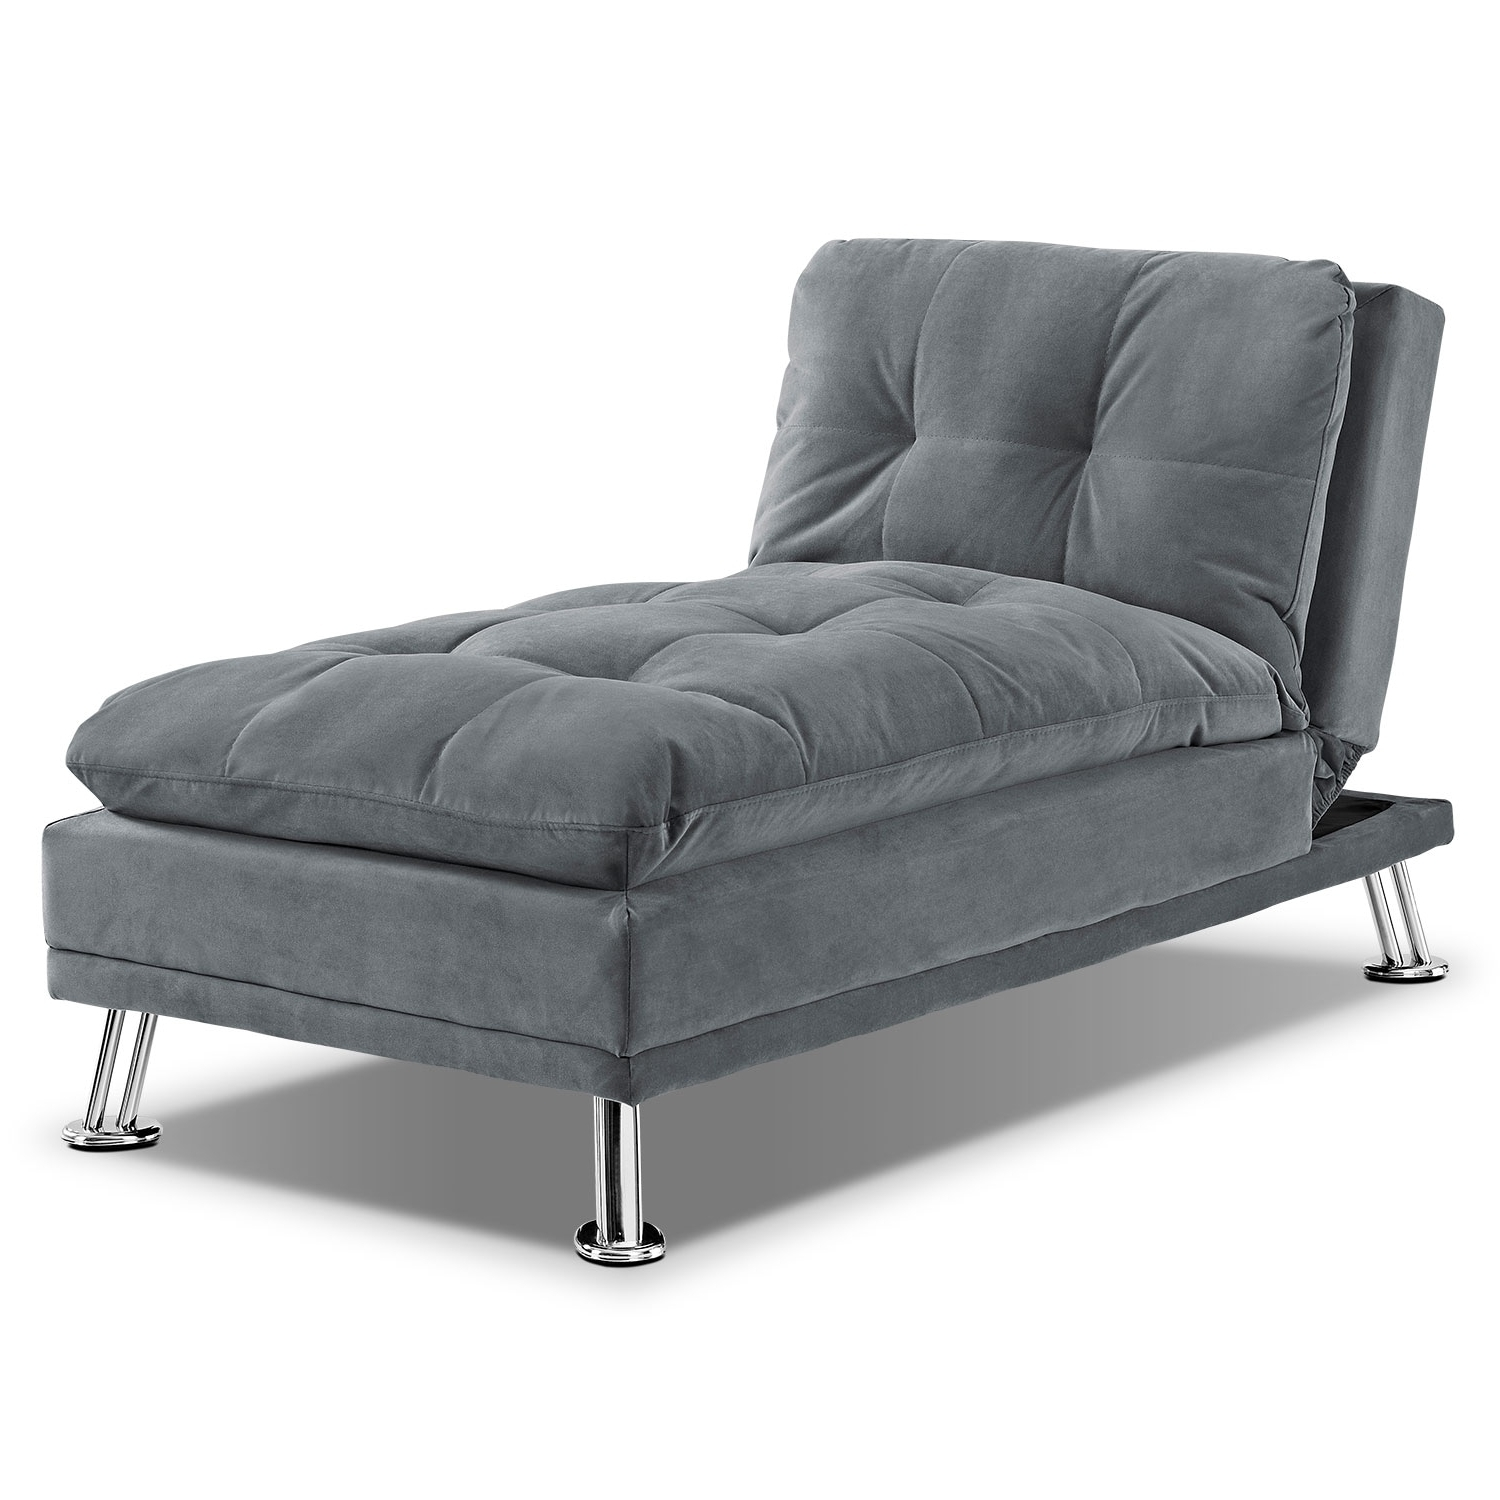 American Signature Furniture Intended For Current Futon Chaises (View 4 of 15)